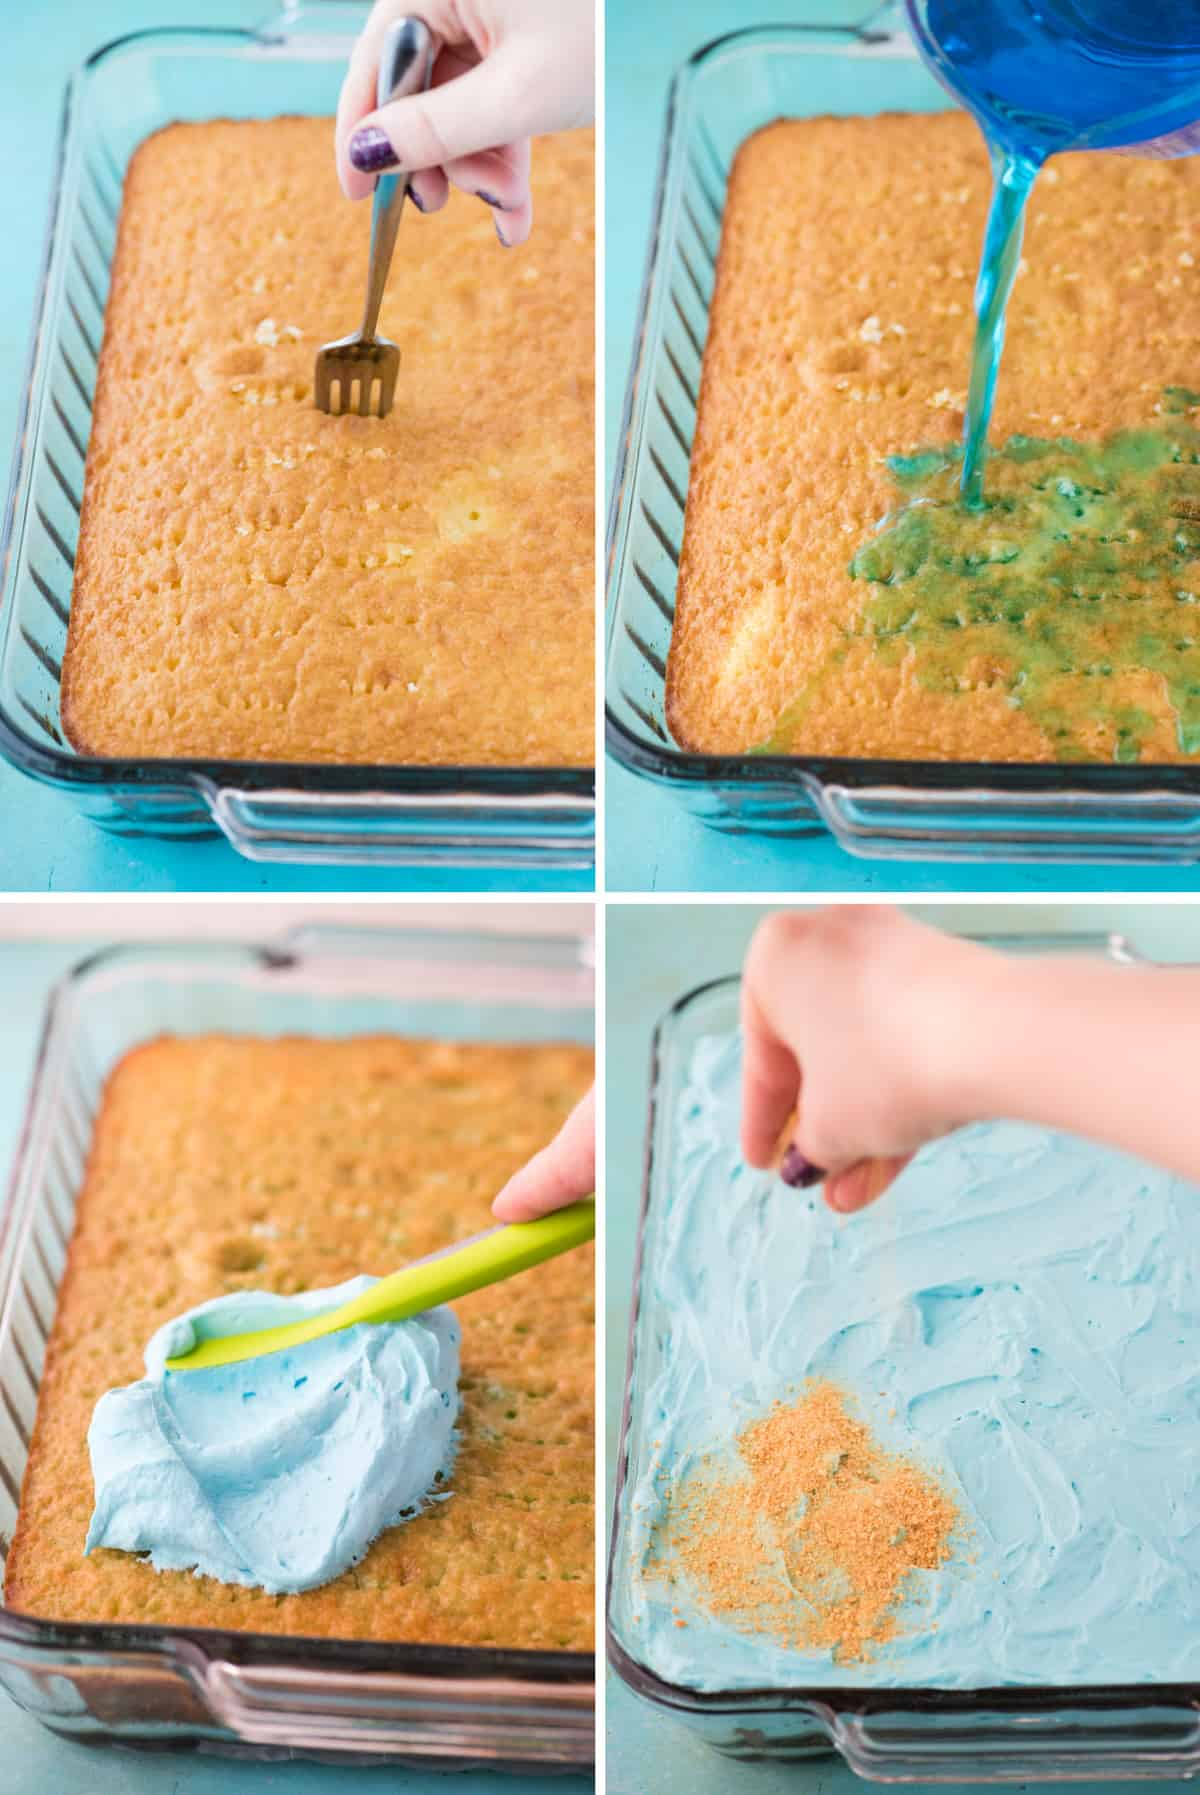 how to make a poke cake, cake in glass 9x13 inch pan with fork poking holes in cake, blue jello mixture being poured over cake